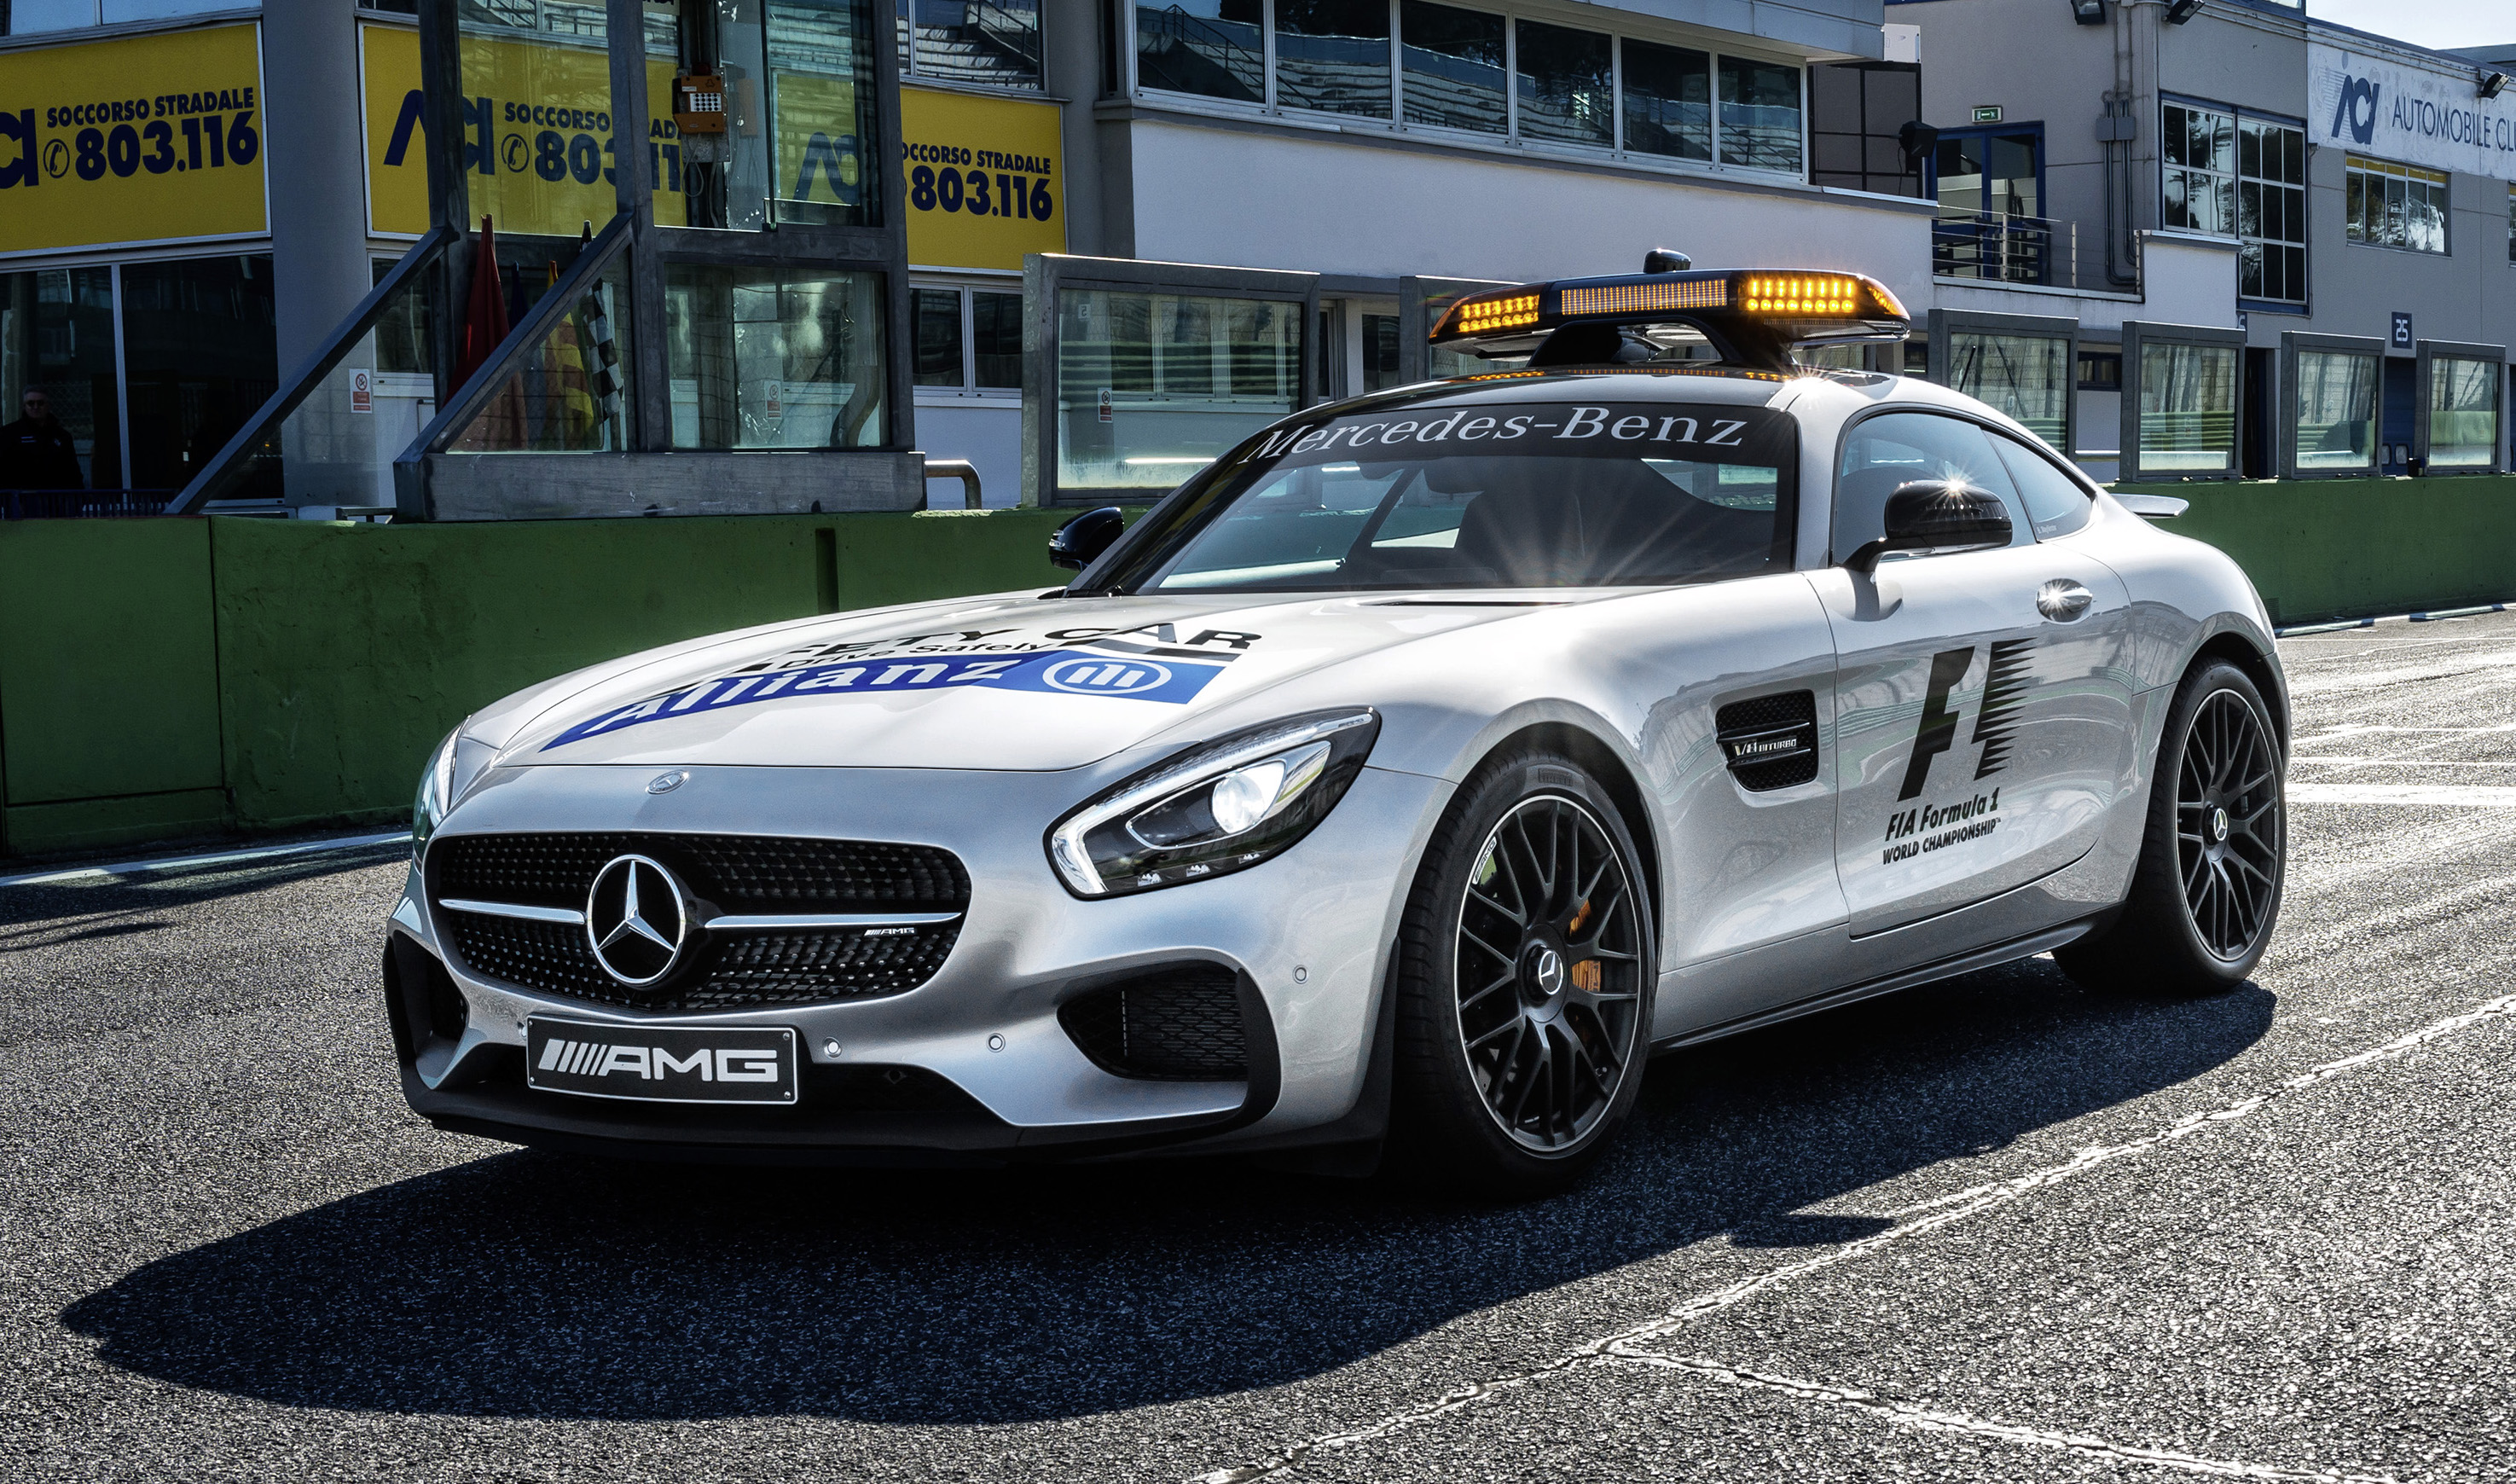 New f1 safety car and medical car unveiled for 2015 for Mercedes benz safety